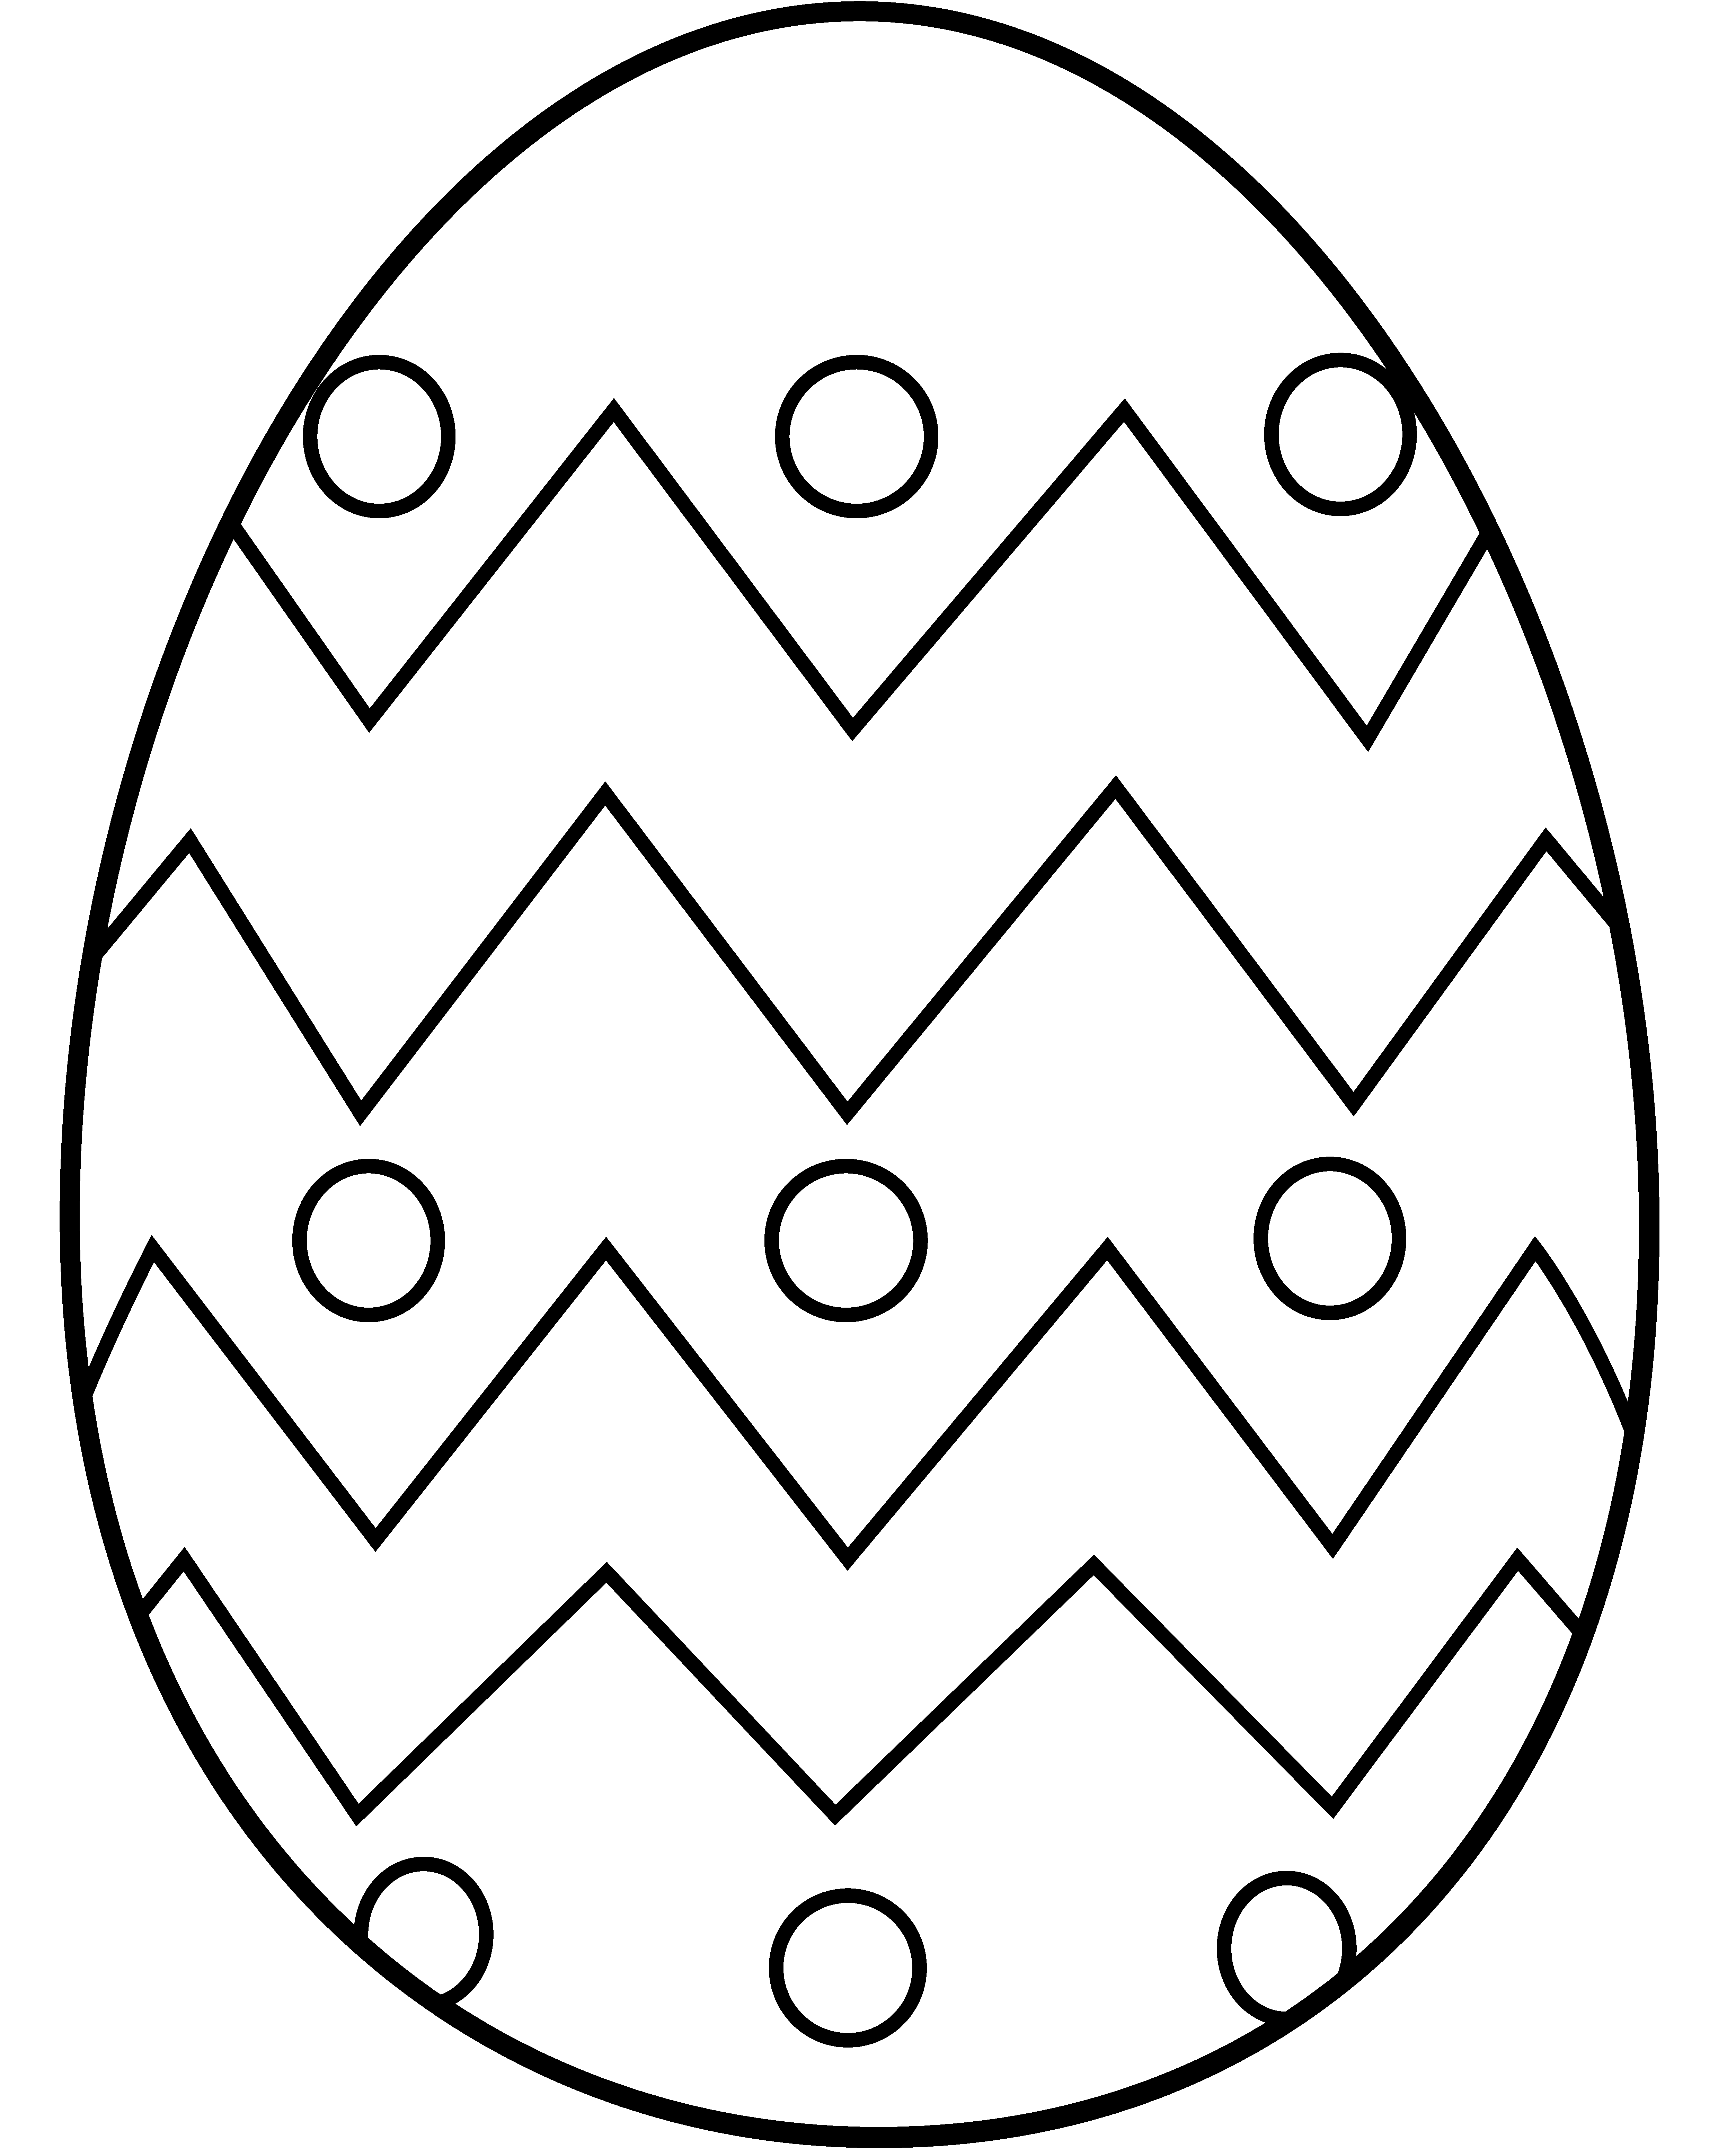 Easter clipart pattern, Easter pattern Transparent FREE for download.